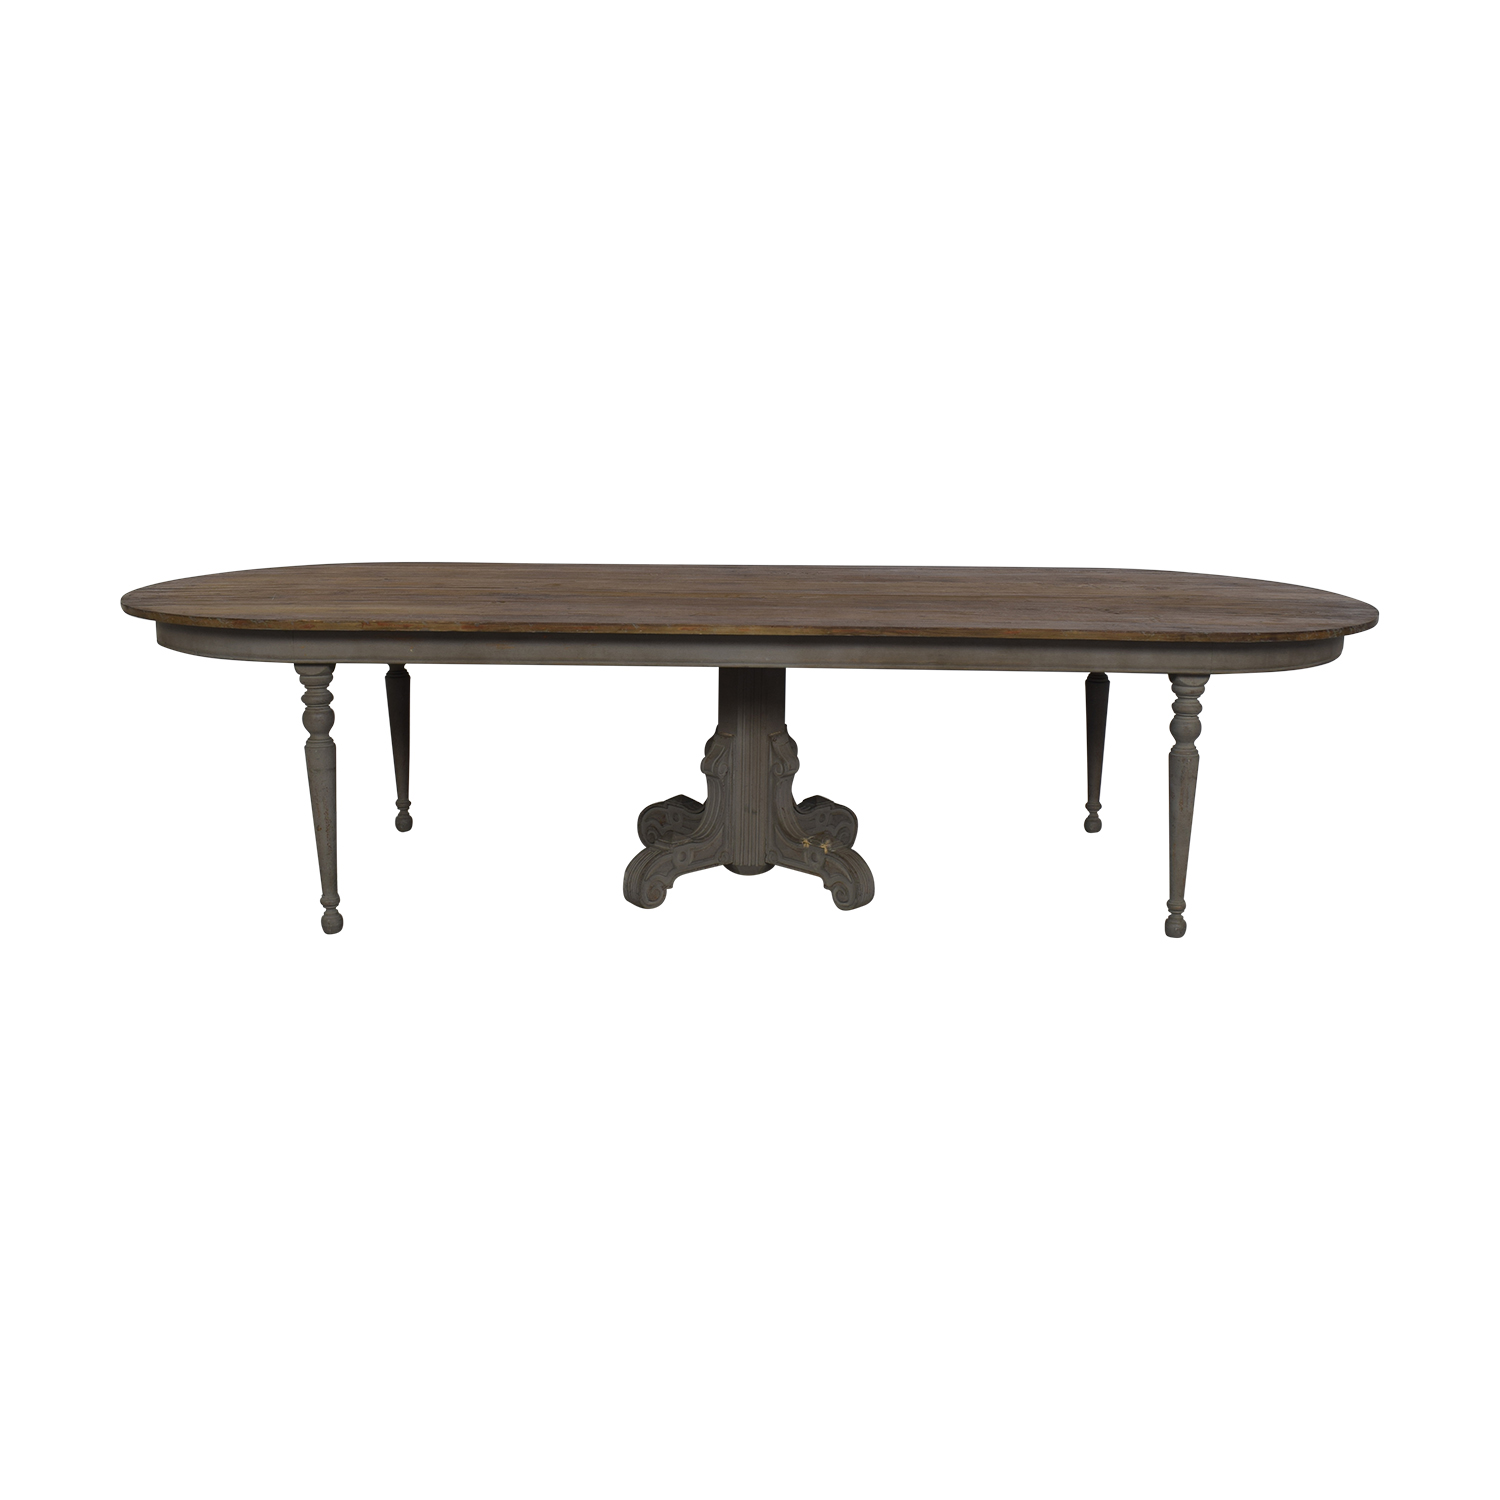 ABC Carpet & Home ABC Carpet & Home Dining Room Table on sale